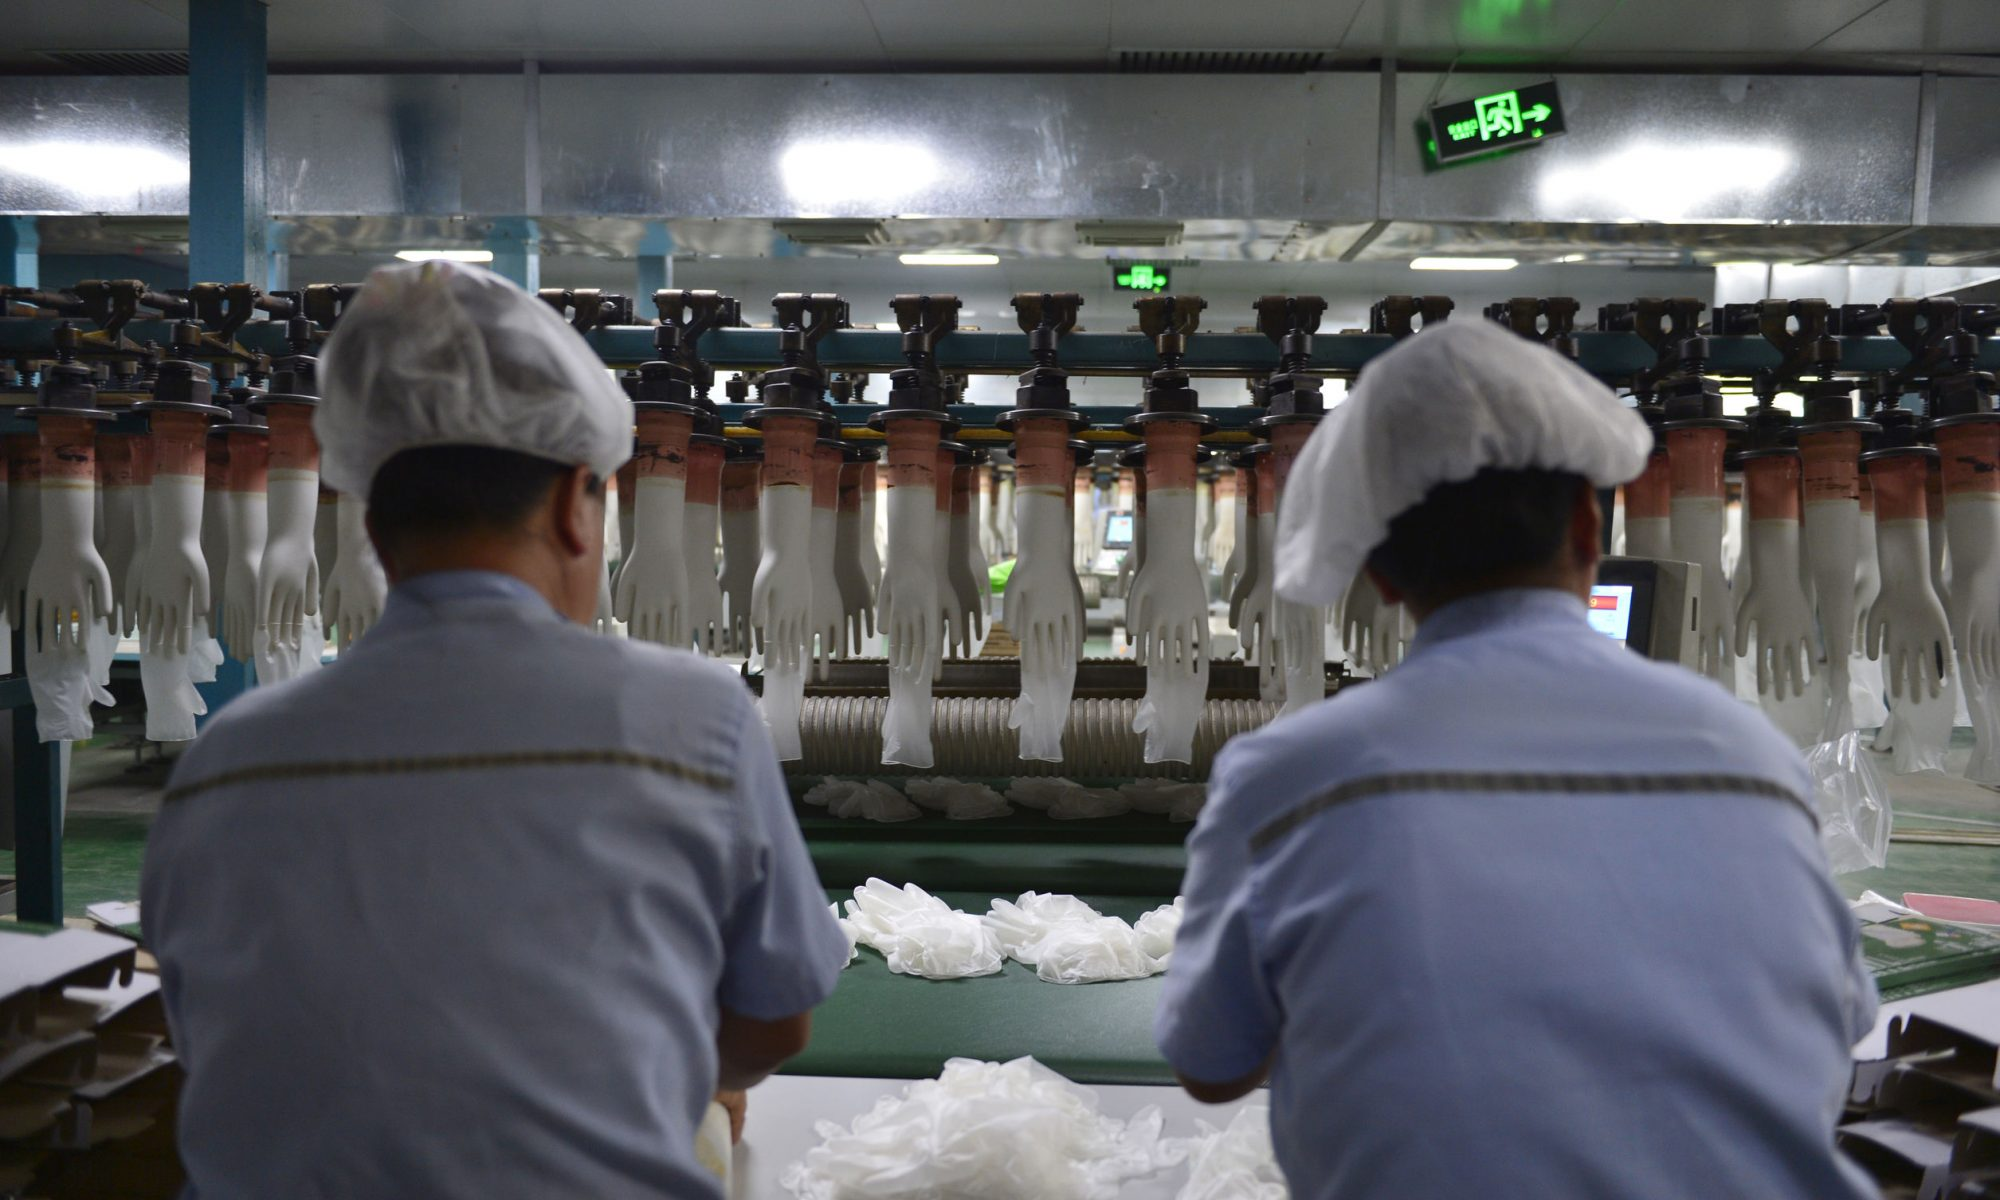 Workers on the disposable glove production line. Photo by Song Qiuju/123rf